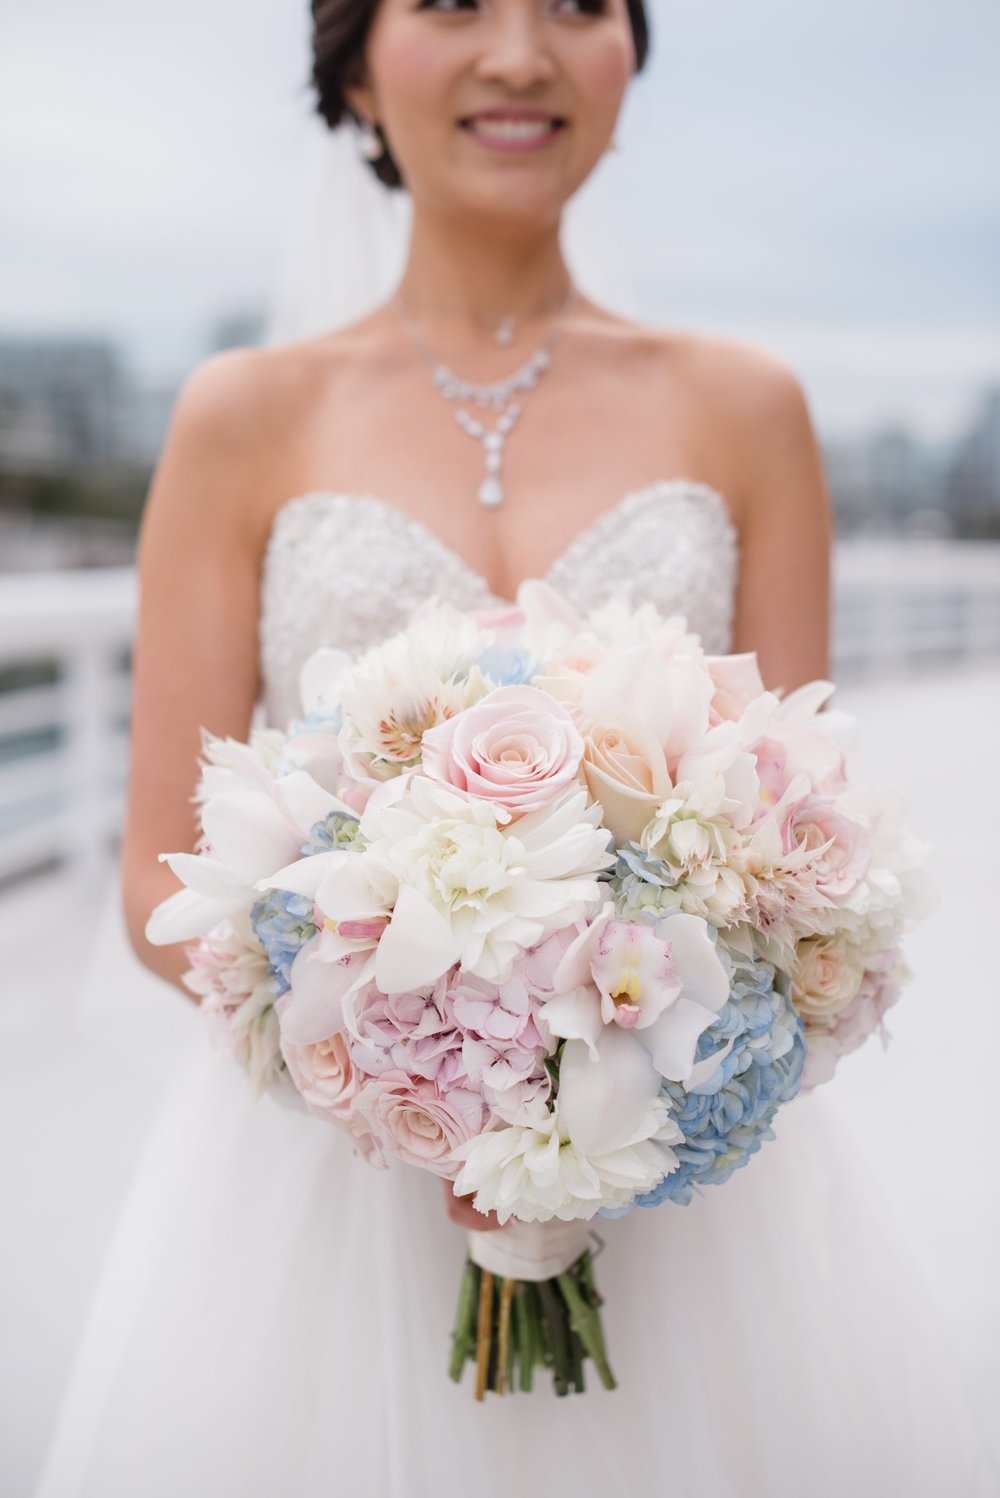 Designer: Flowerz | Photography: Blush Photography